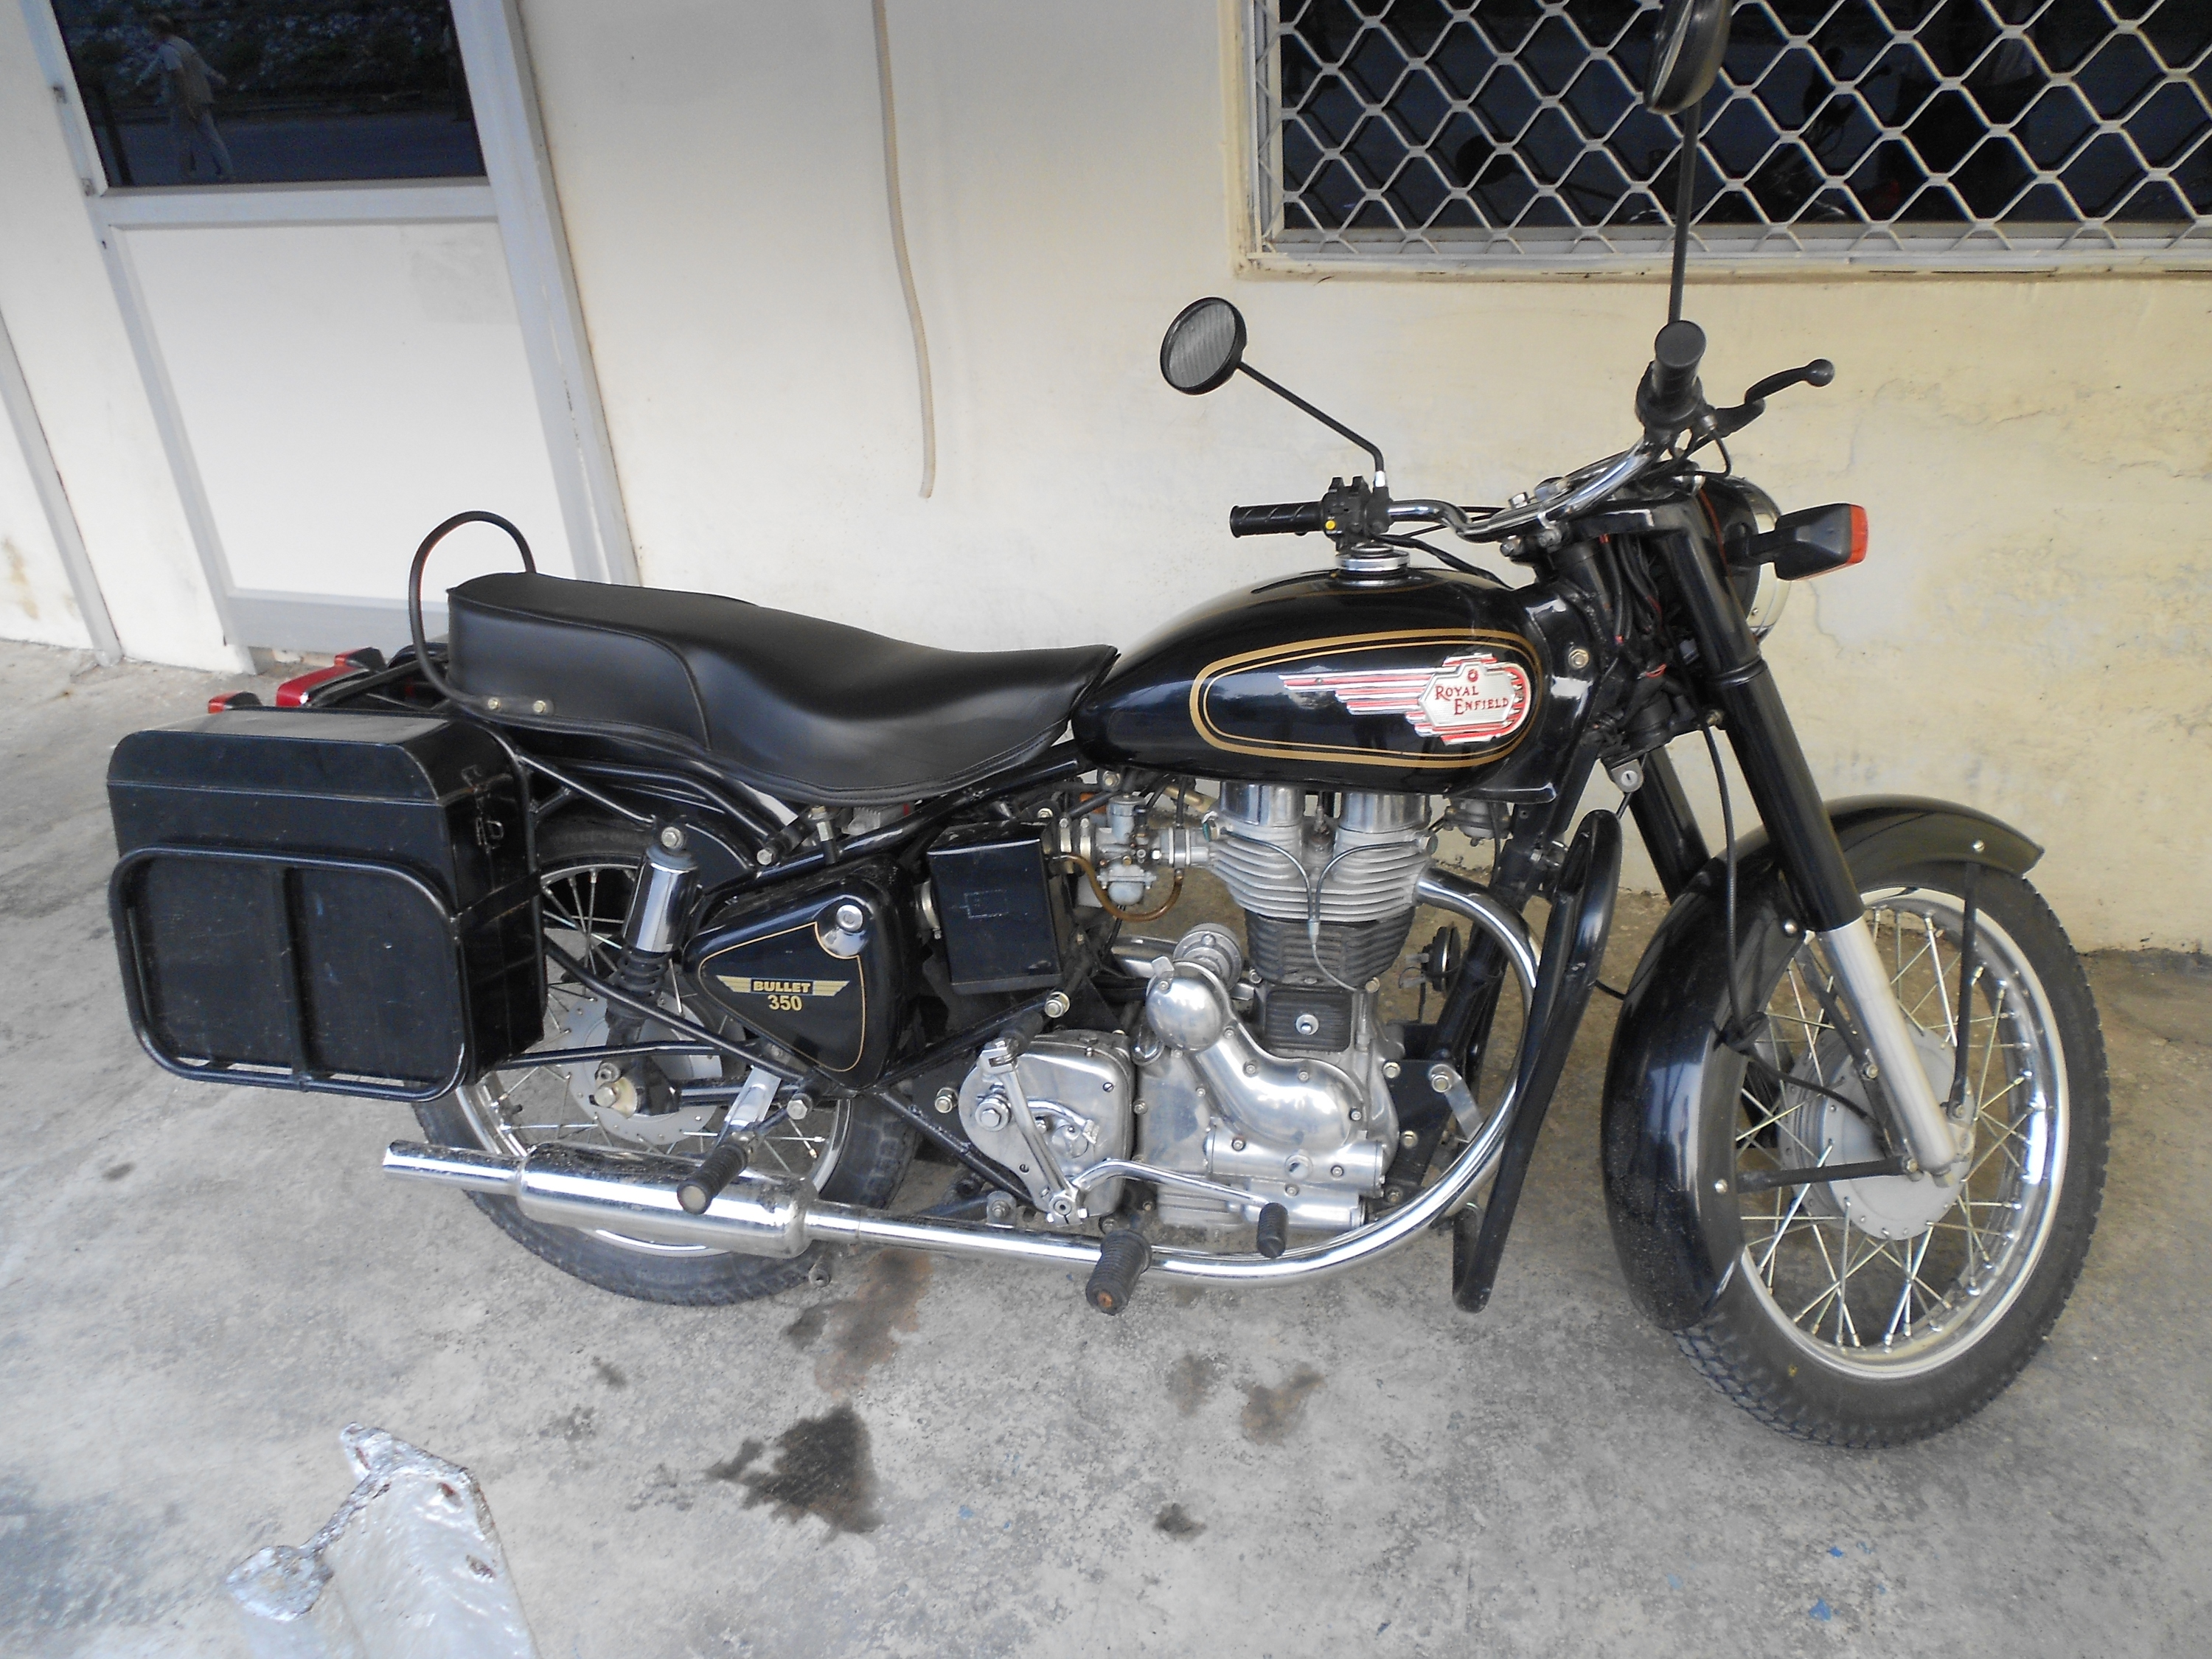 Royal Enfield Bullet 500 Army images #158640